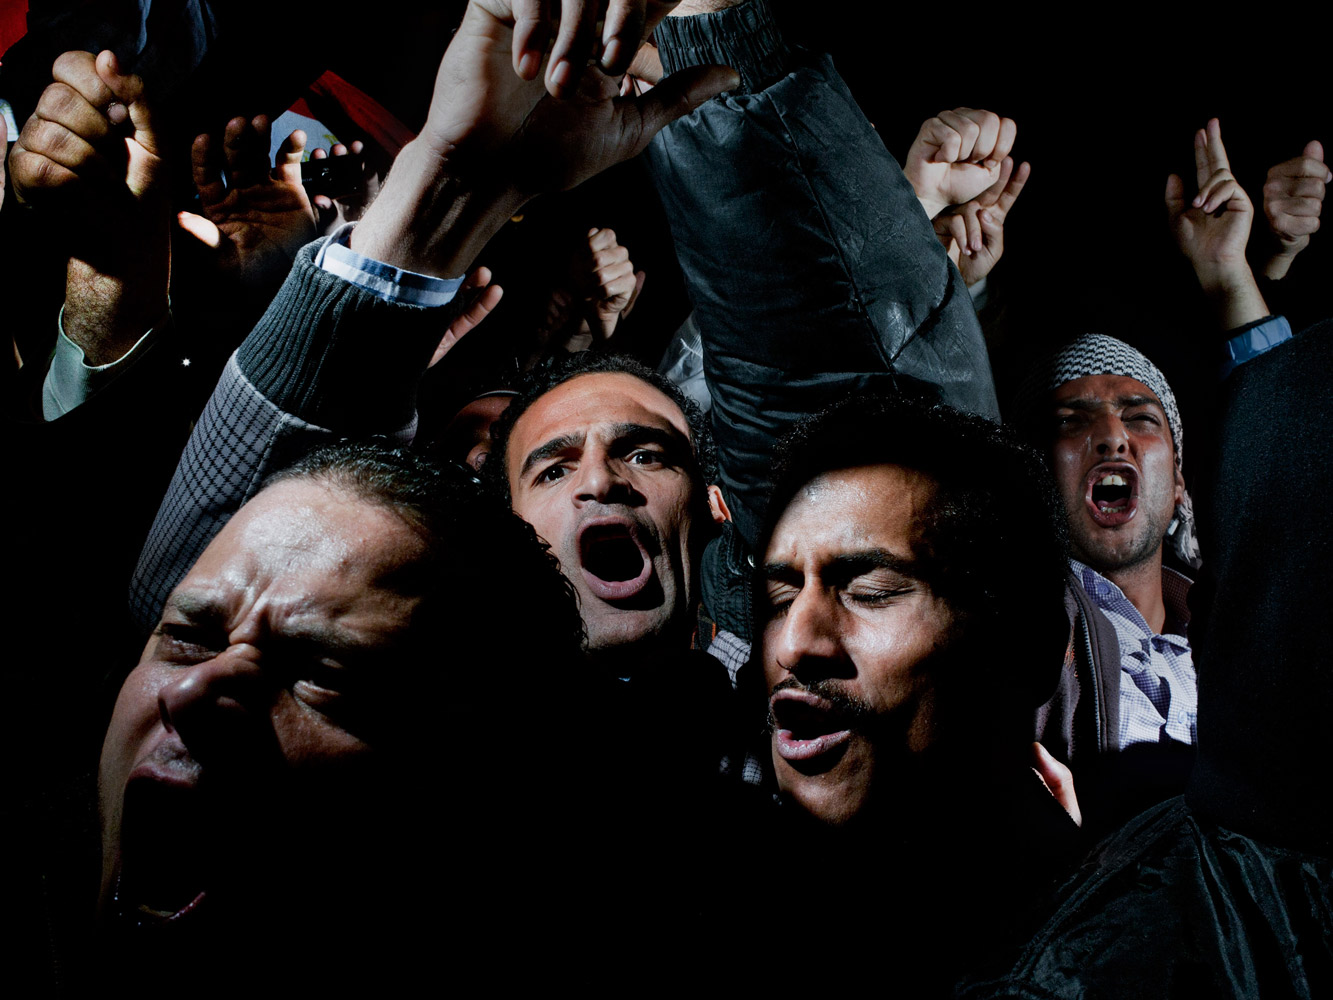 First Prize General News SinglesFebruary 10. Cairo, Egypt. Protesters cry, chant and scream in Cairo's Tahrir Square, after listening to the speech in which Egyptian President Hosni Mubarak said he would not give up power.